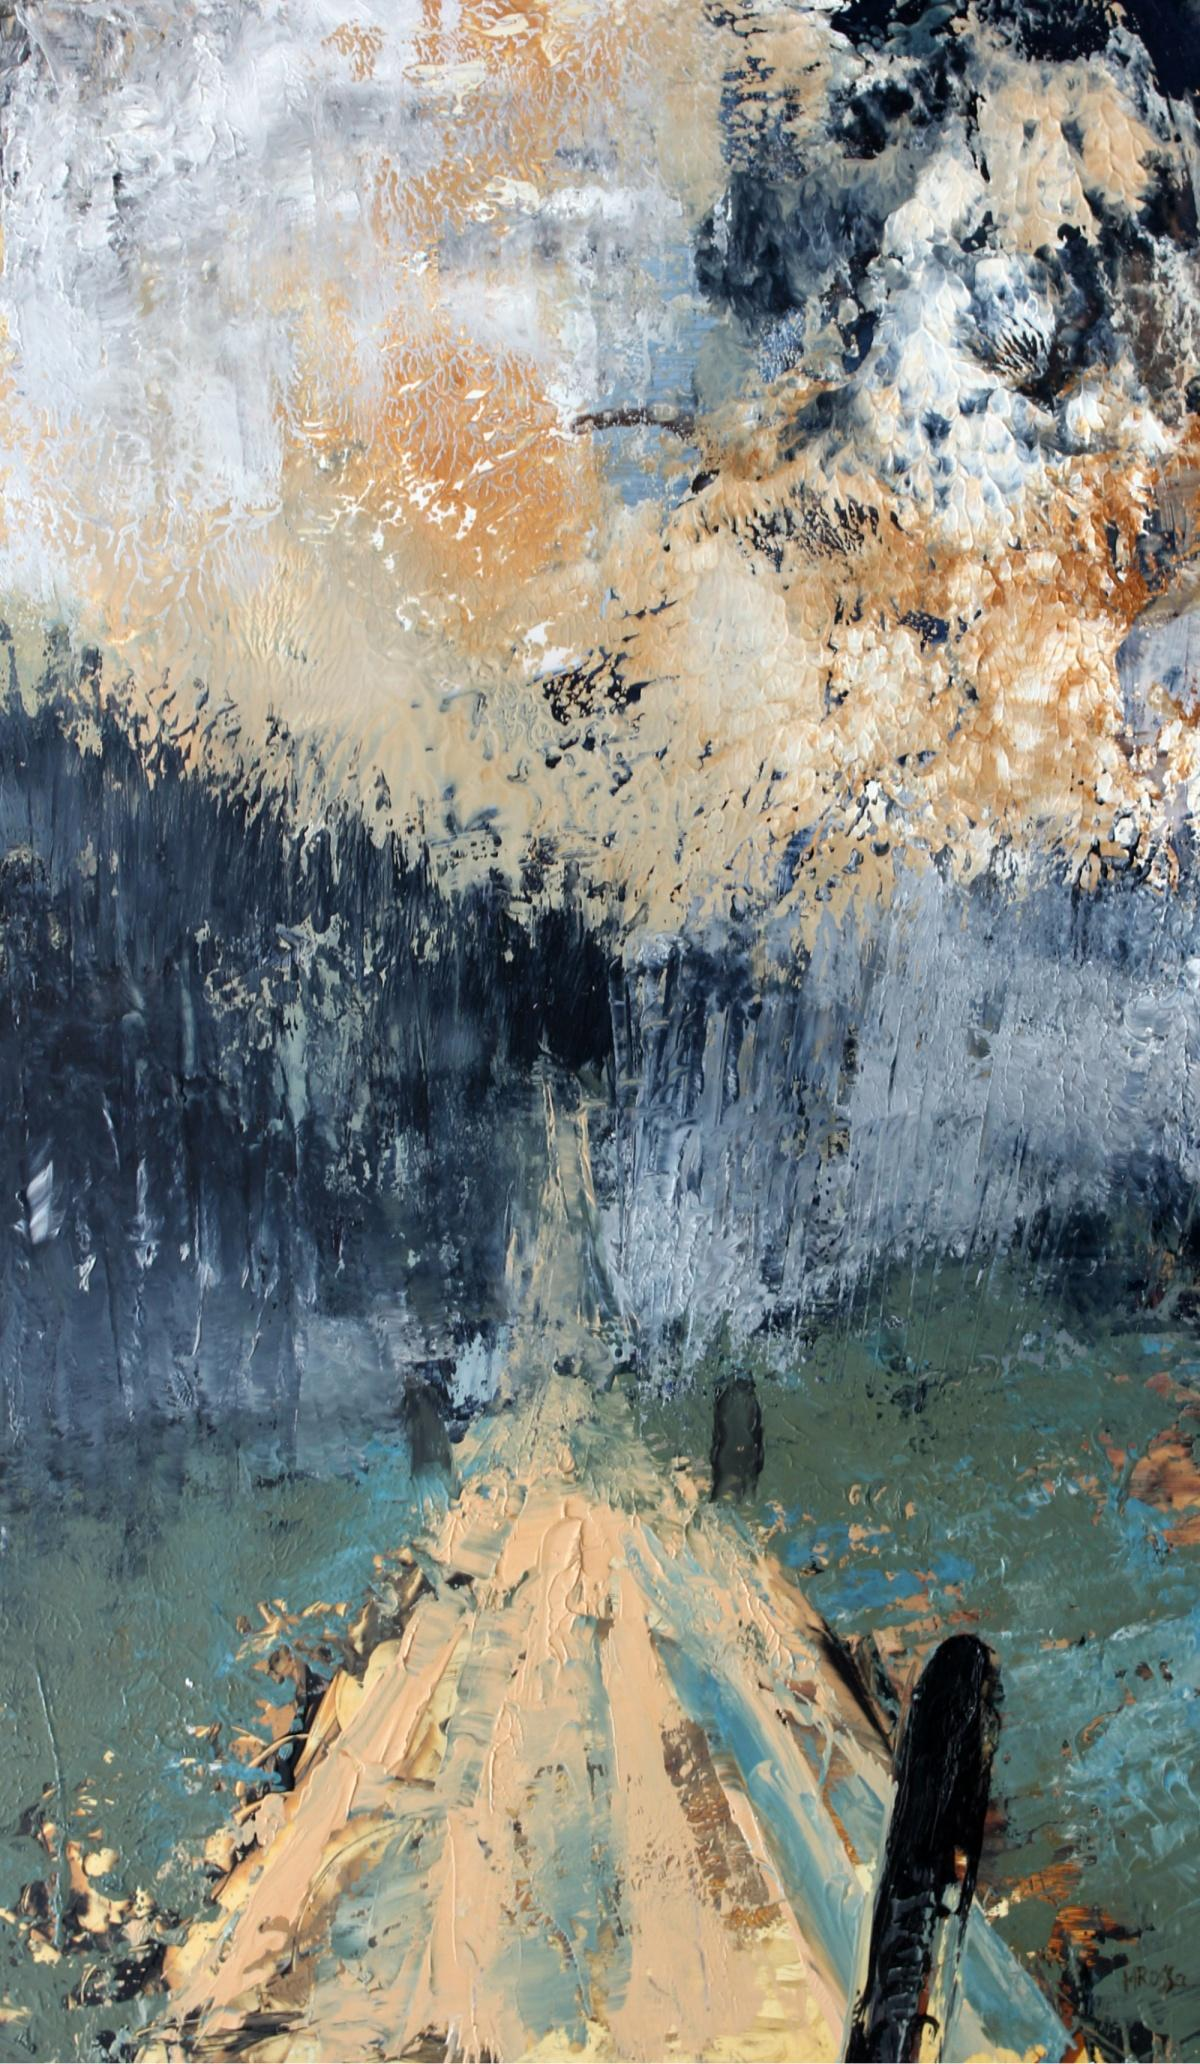 Landscape - XXI century, Contemporary Oil & Acrylic Painting, Abstraction